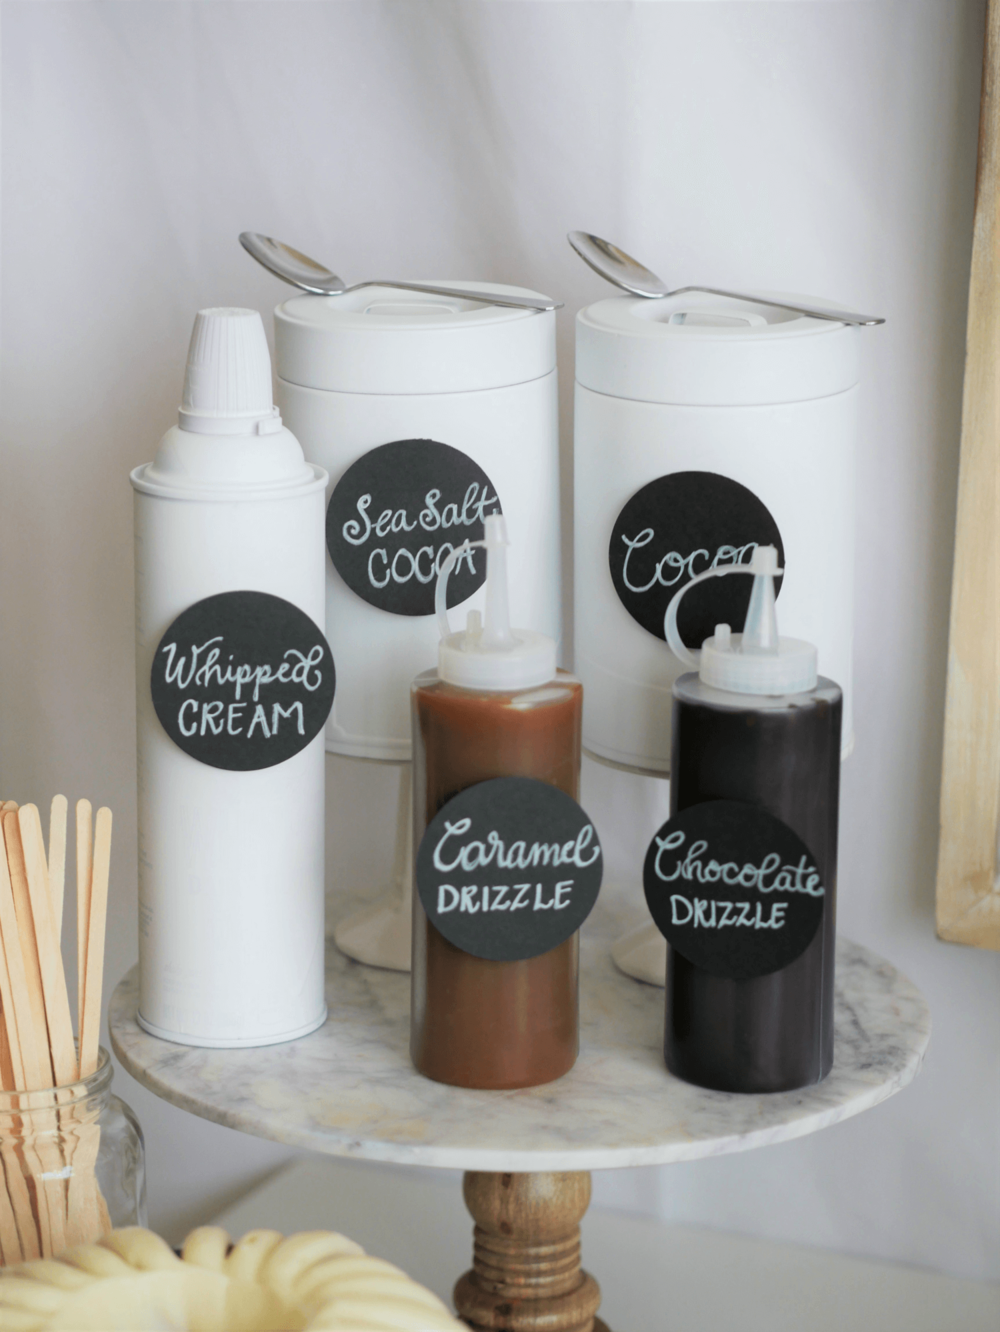 Yummy Whipped cream, caramel and chocolate drizzle are the Hot Chocolate Toppings of choice for this super stylish and easy DIY Hot Cocoa and Coffee Station. Styled by party stylist Mint Event Design. #partyideas #partyinspiration #hotchocolate #hotcocoa #coffeebar #coffeestation #winterparty #winterwedding